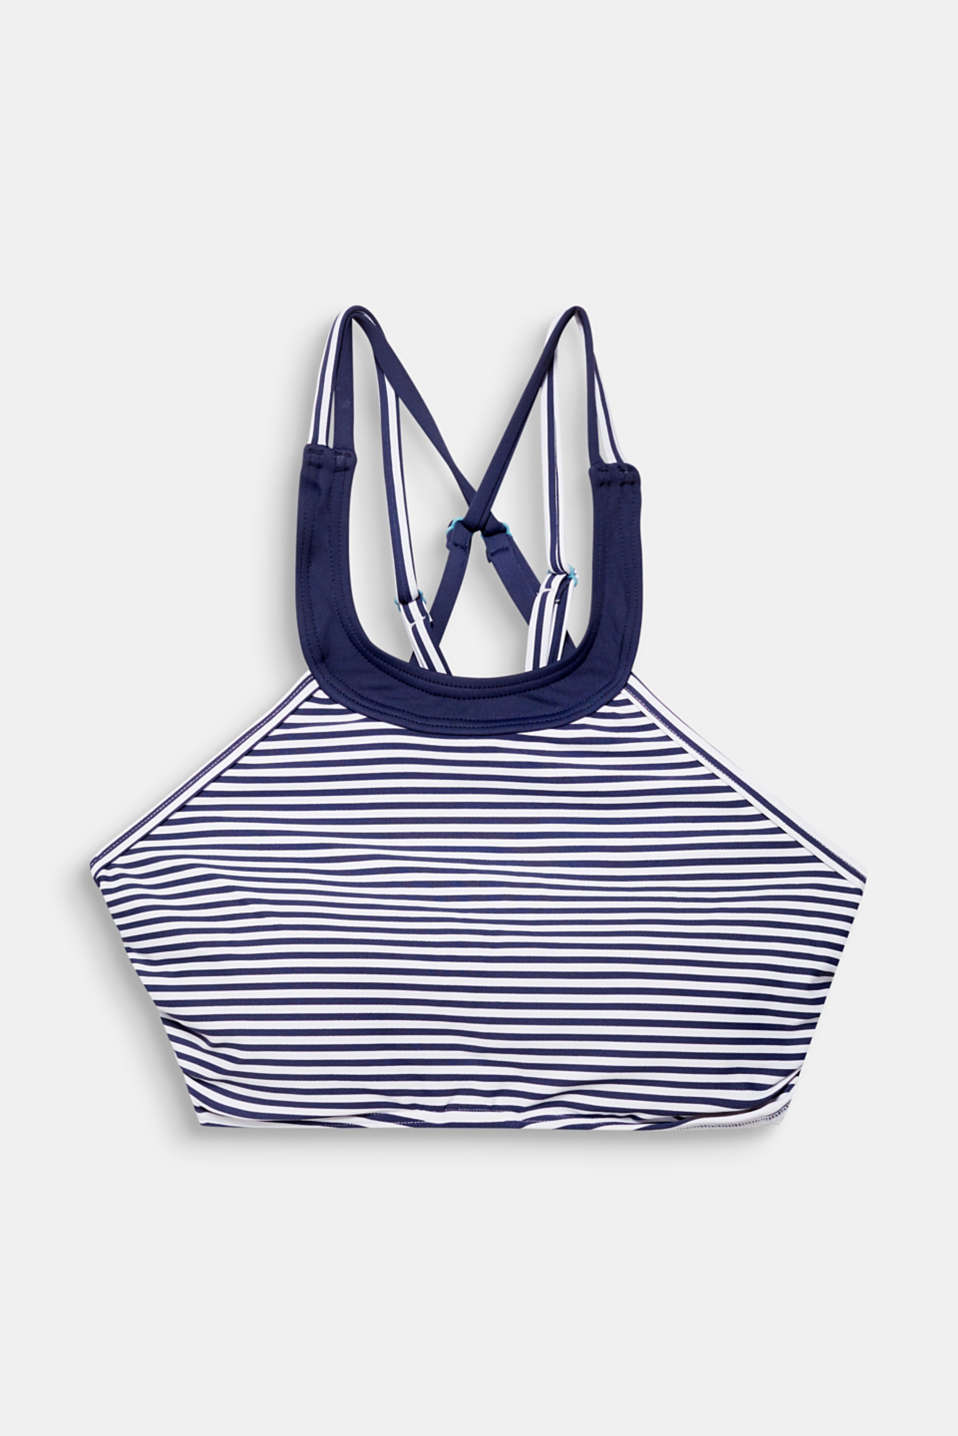 Padded high-neck top with crossed over straps, NAVY, detail image number 4